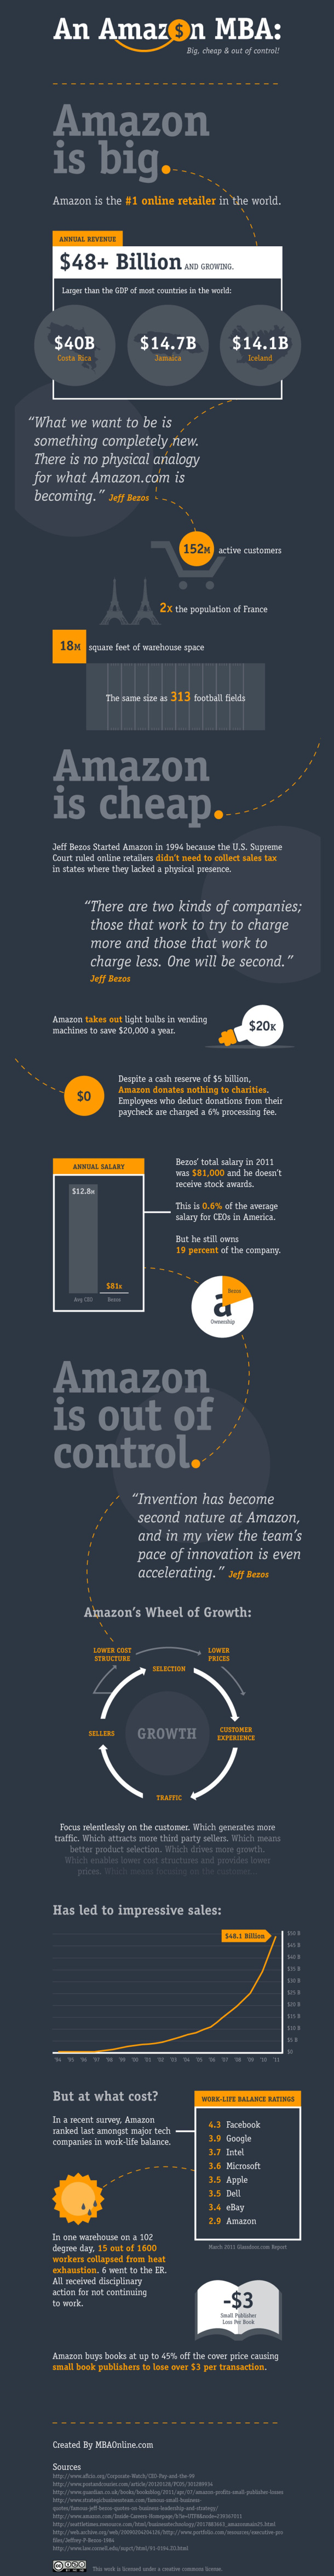 7. An Amazon MBA Big, Cheap & Out of Control